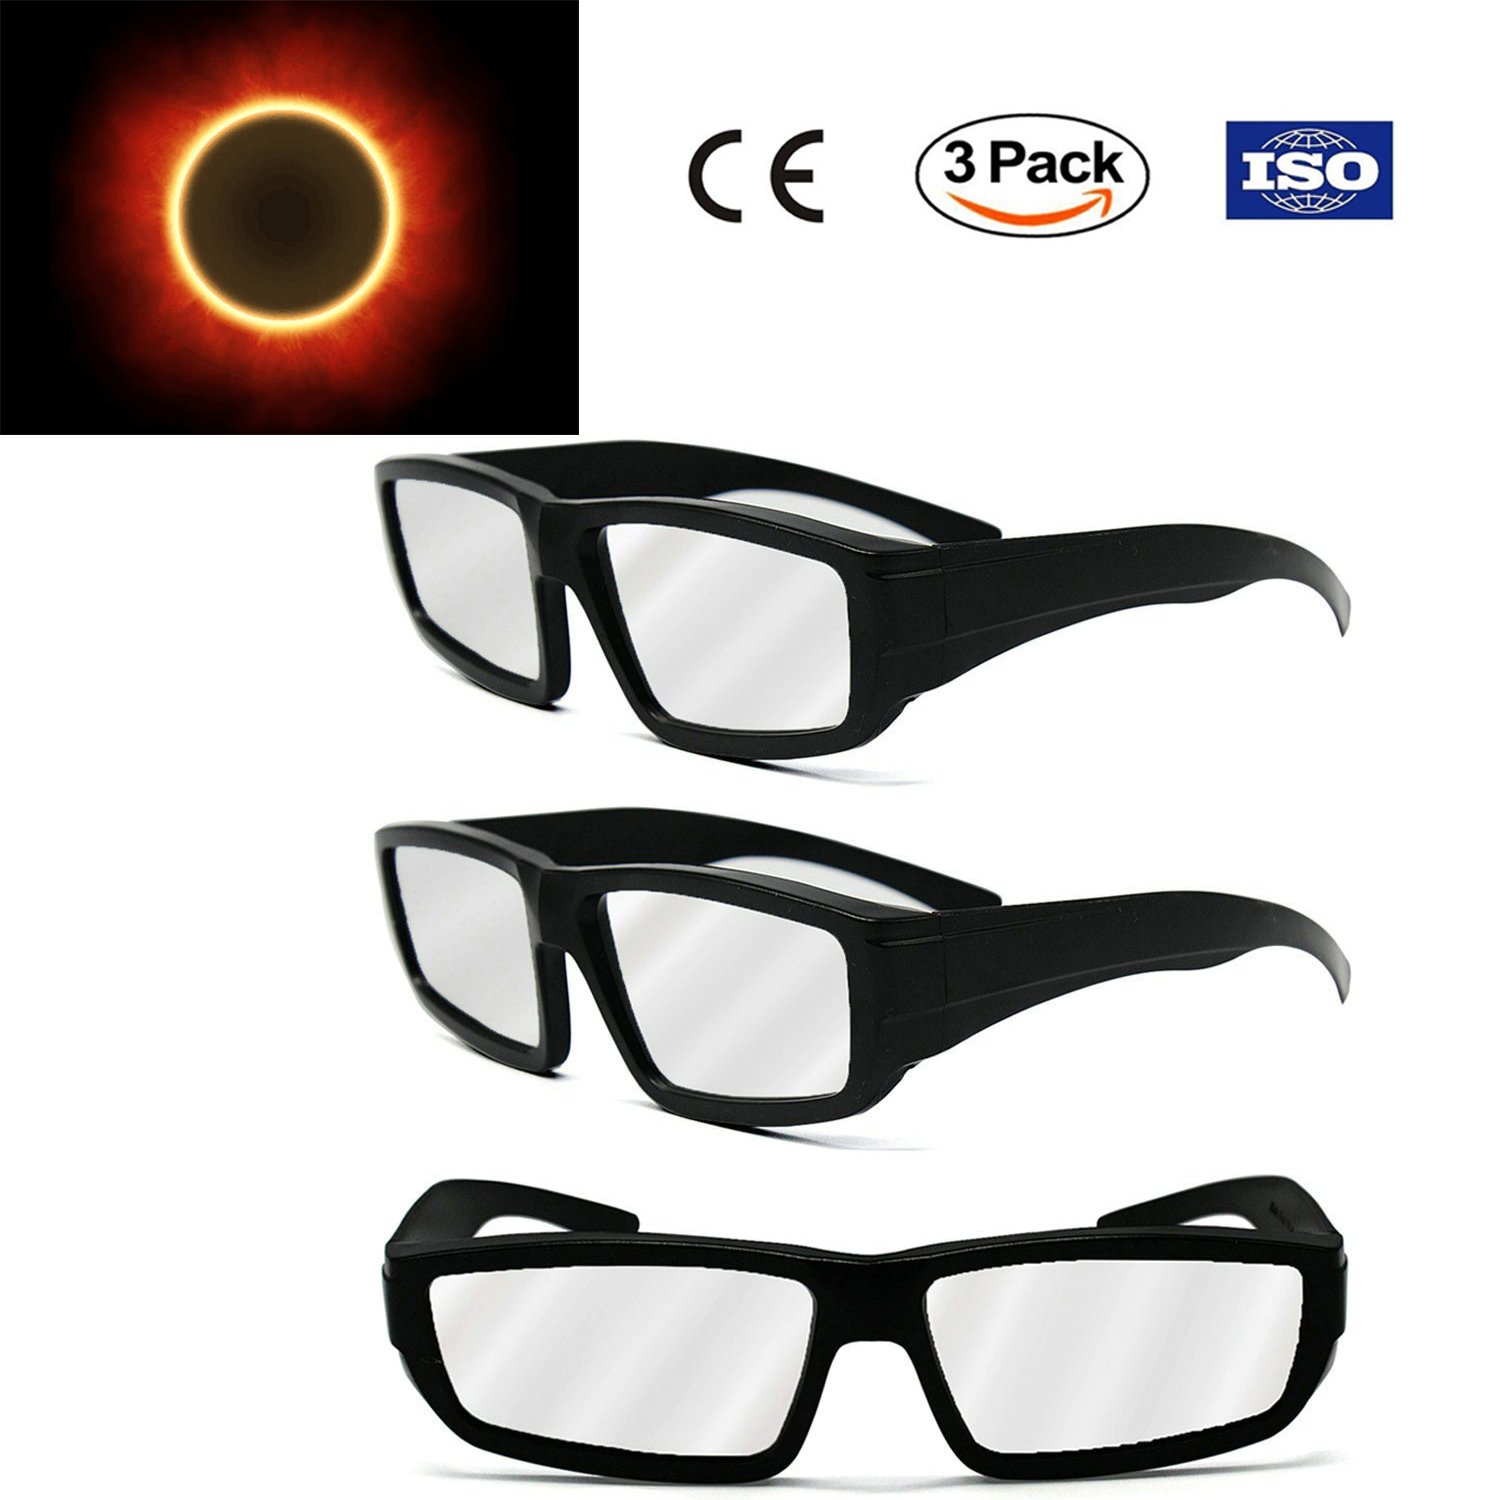 Professional Plastic Solar Eclipse Glasses - CE and ISO Certified Safe Sun Viewing - 3 Pack - Plastic Solar Eclipse Viewing Glasses for Adults & Teenagers - August 21, 2017